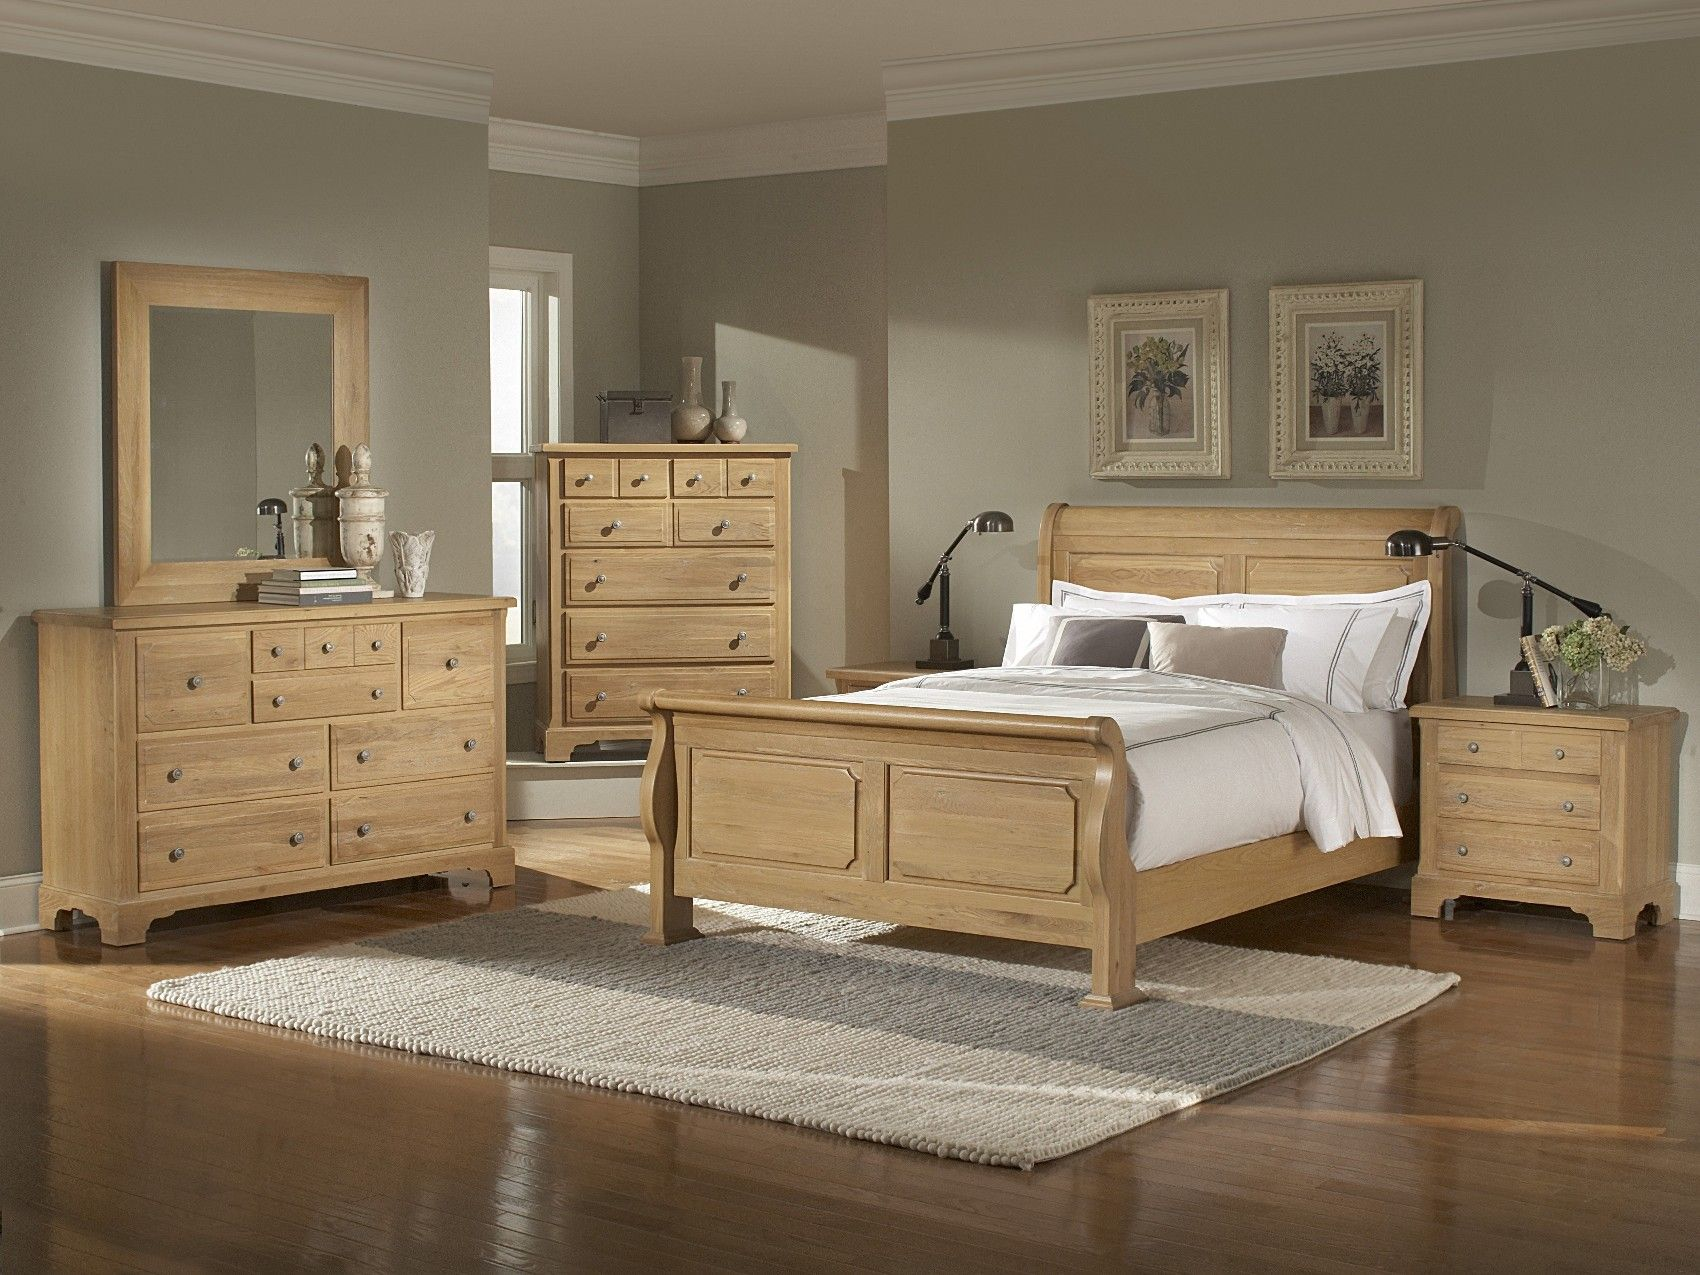 Wooden Bedroom Furniture Sets Oak Bedroom Furniture Sets Washed Oak Queen Sleigh Bedroom